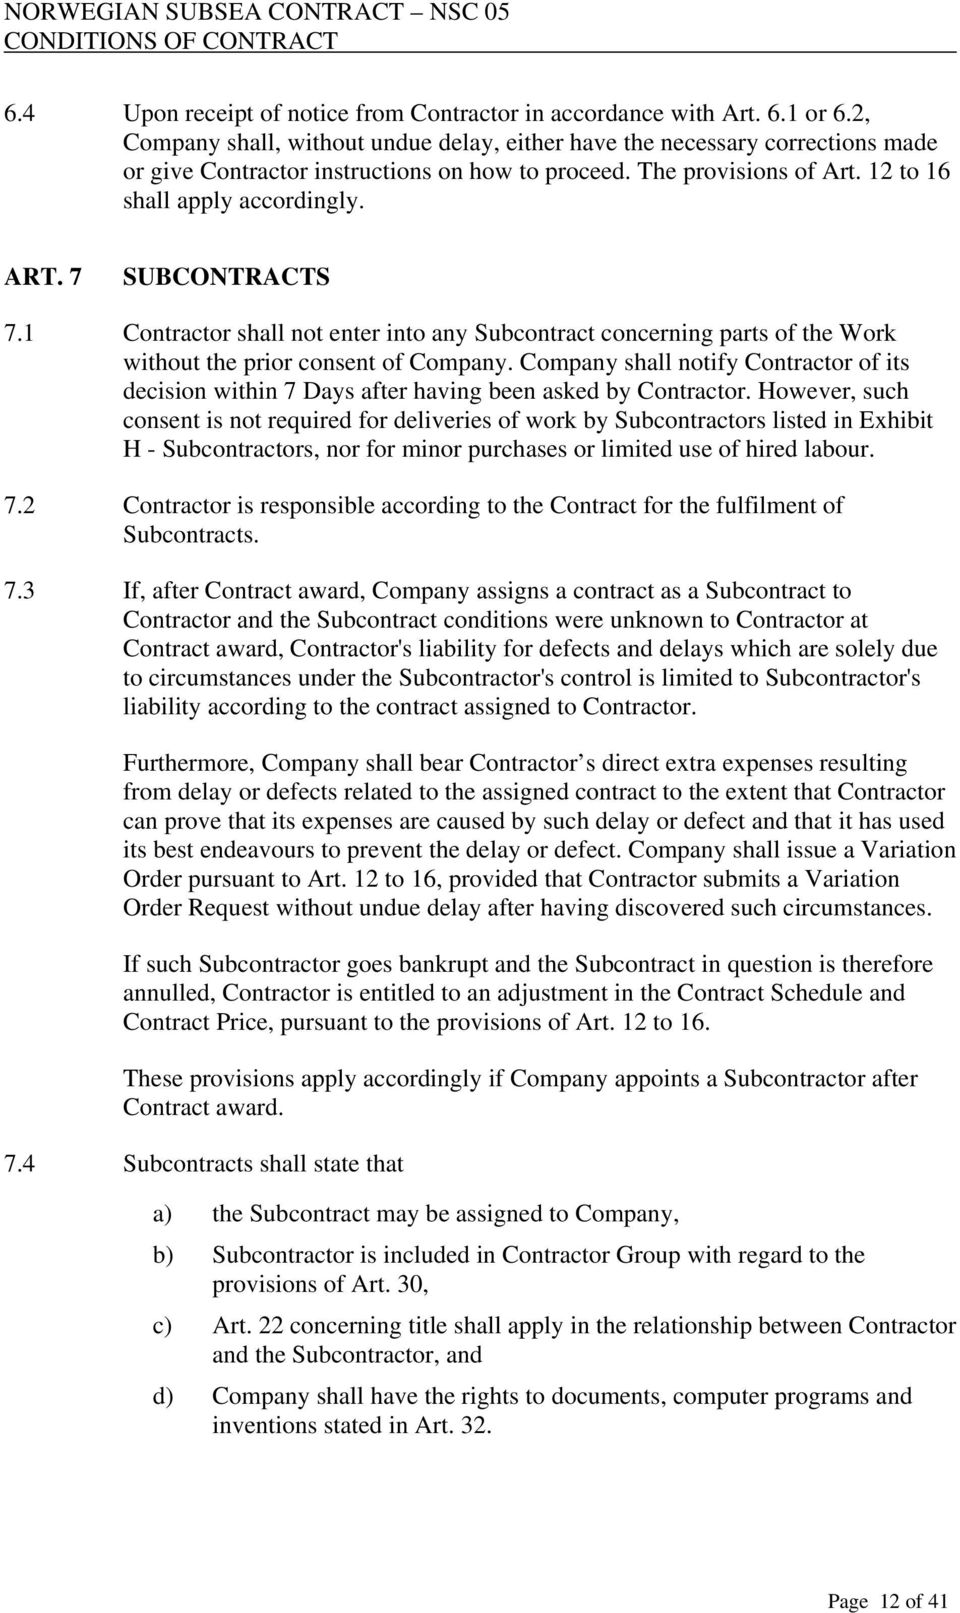 NORWEGIAN SUBSEA CONTRACT NSC 05 CONDITIONS OF CONTRACT - PDF